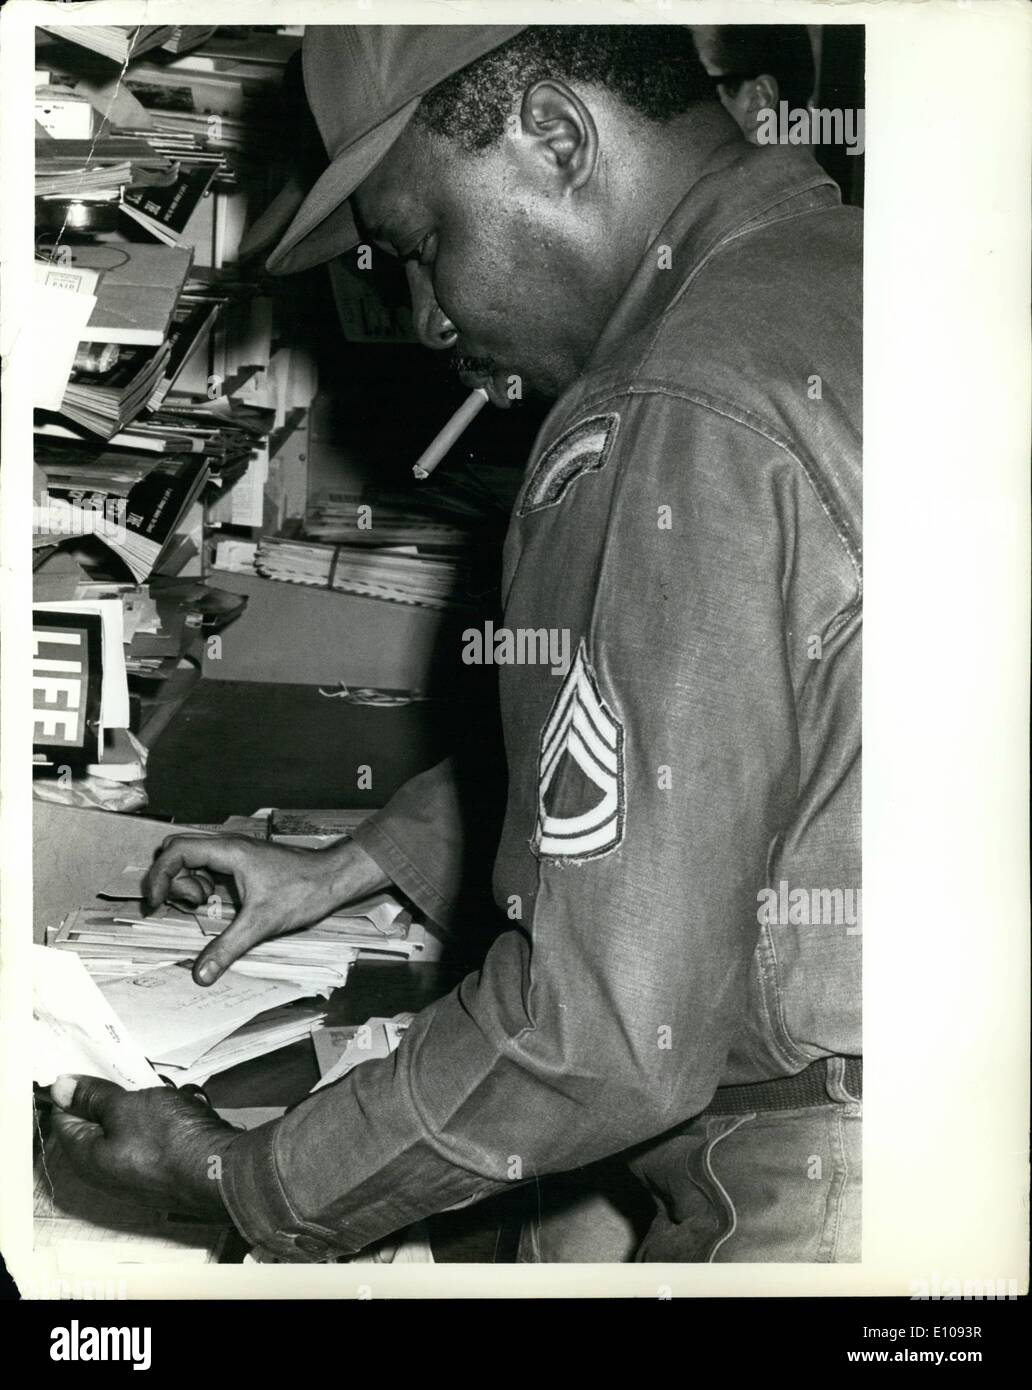 Mar. 03, 1970 - New York Mail Strike: Members of the National Guard [several units, including the 10th Infantry Div.] sorting the mail at the New Lots station post office, located at 1223 Sutter Avenue, Brooklyn, N.Y. - Stock Image